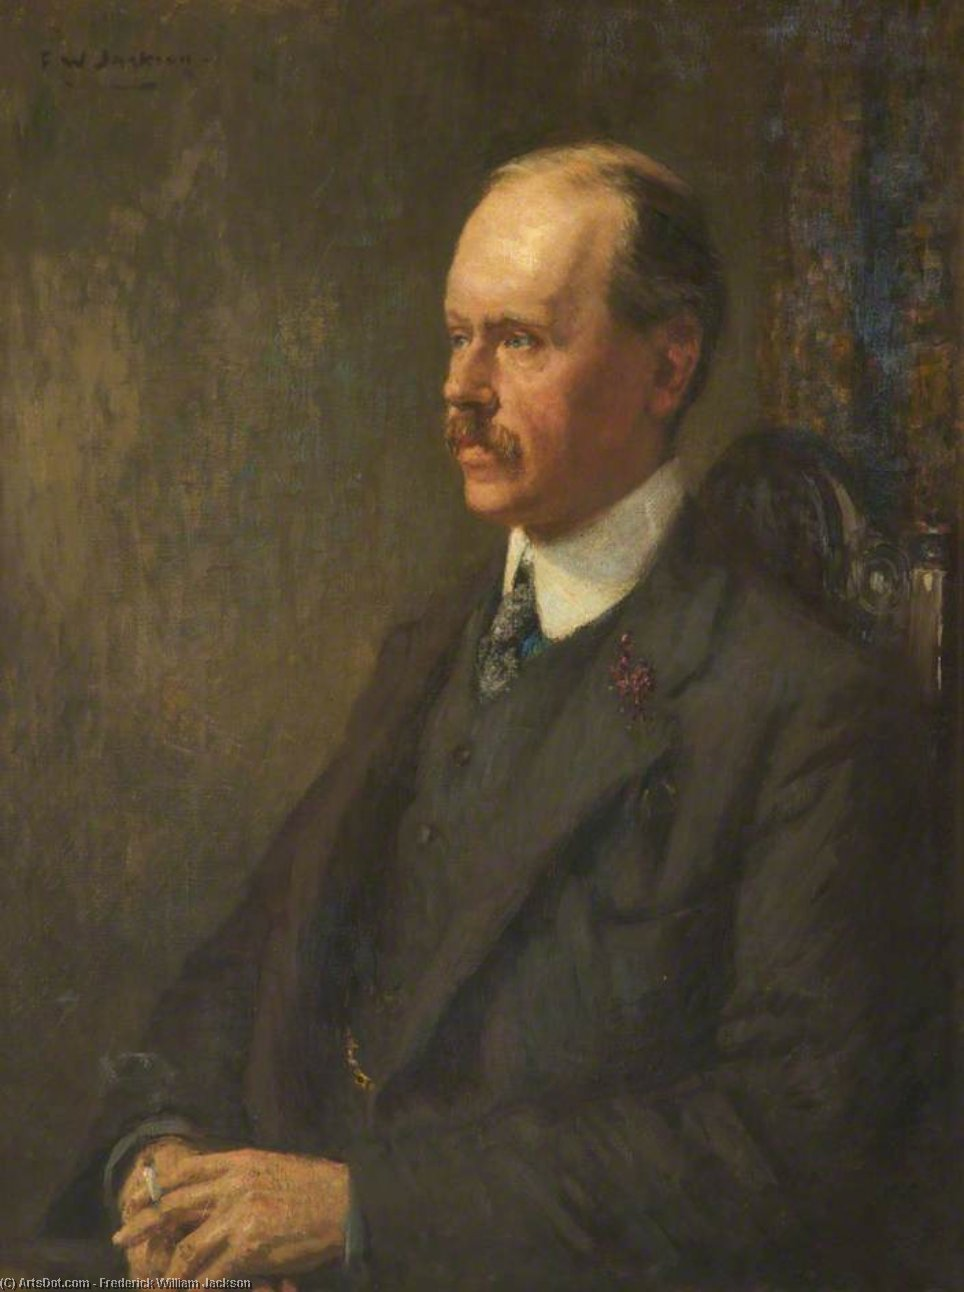 A. G. C. Hanley, President Of The Liberal Association by Frederick William Jackson (1859-1918, United Kingdom)